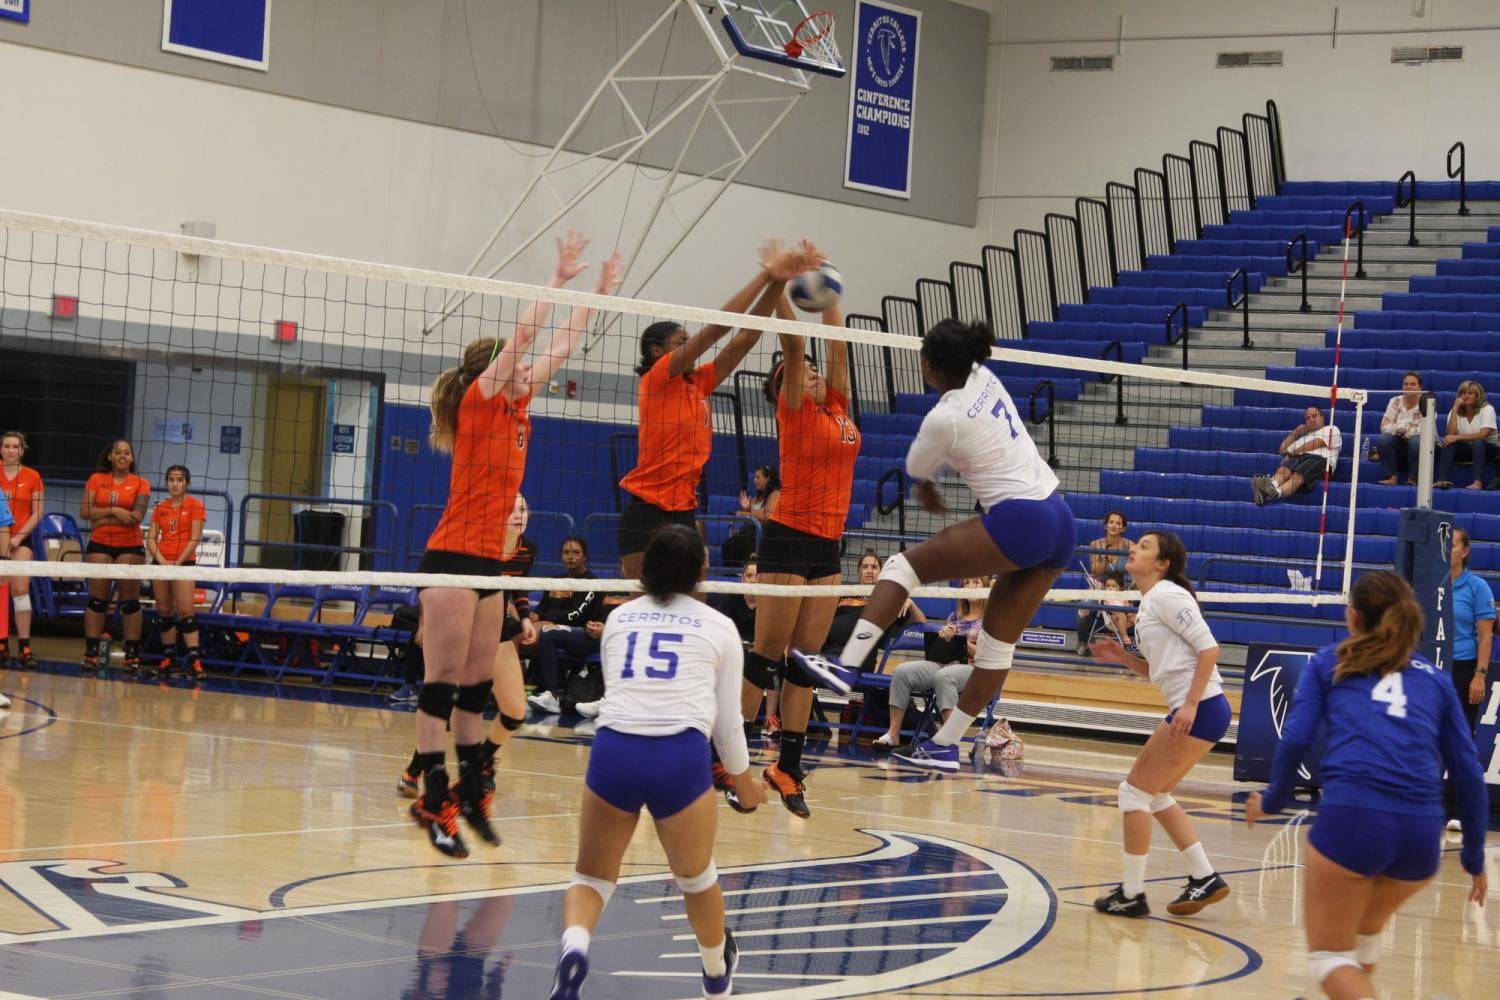 Women's Volleyball lose a close game